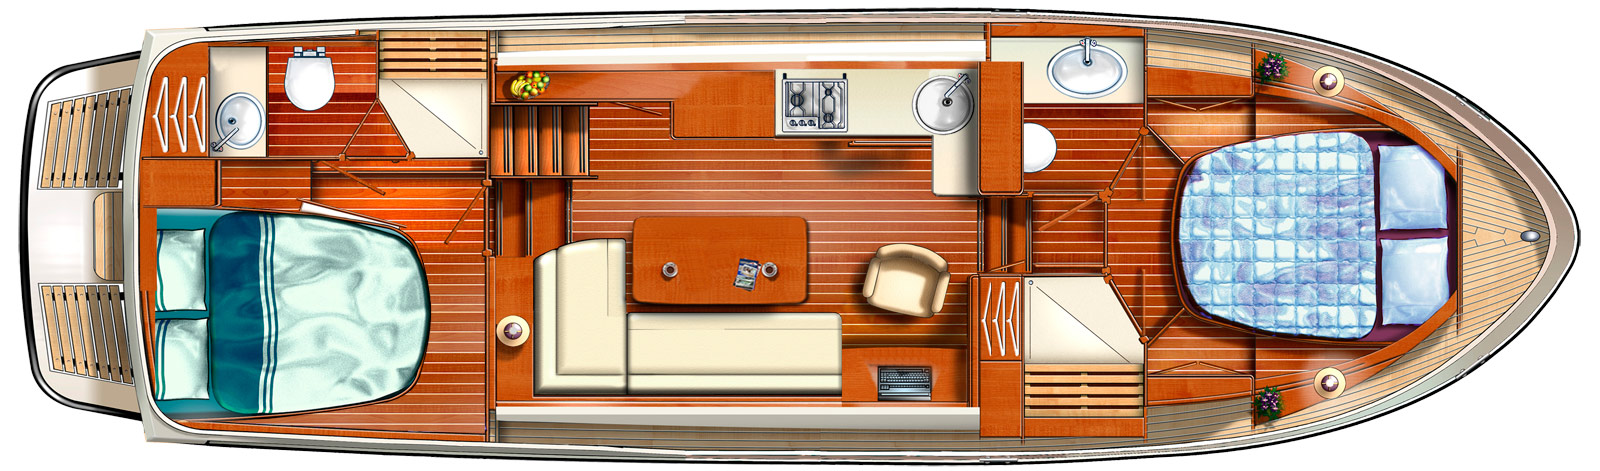 pre owned Linssen Grand Sturdy 36.9 AC layout